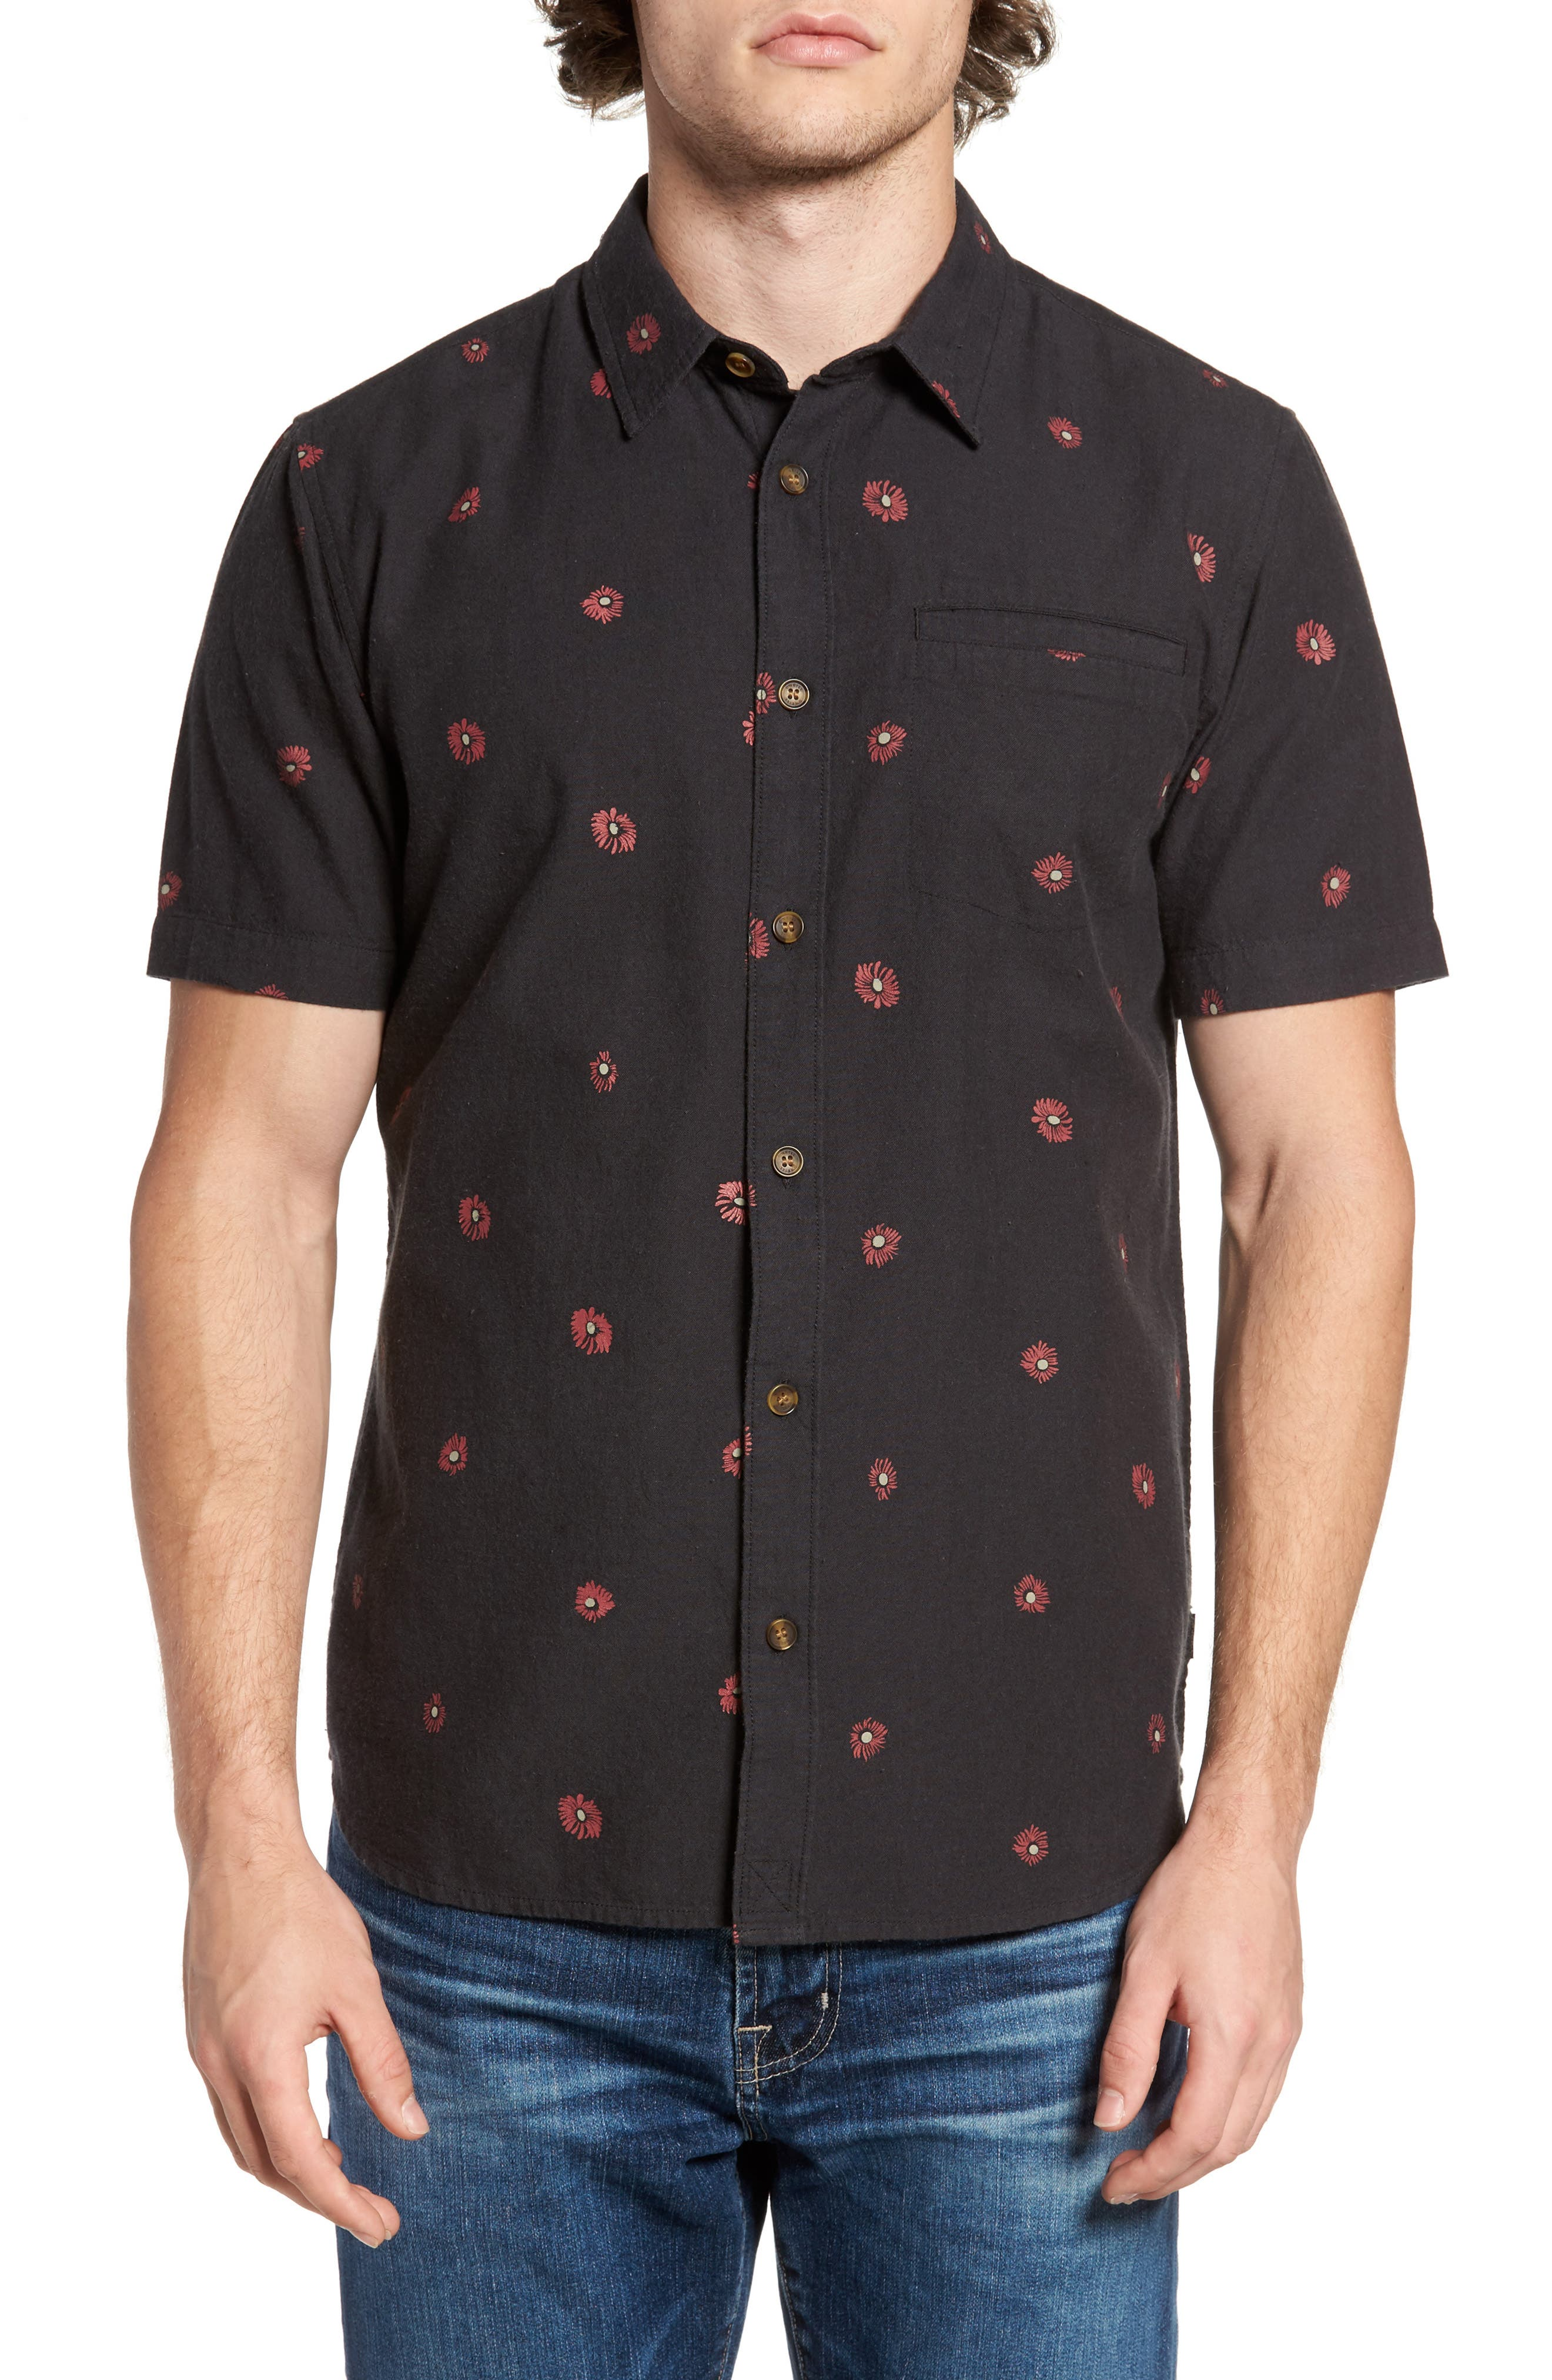 O'Neill Brees Floral Print Woven Shirt